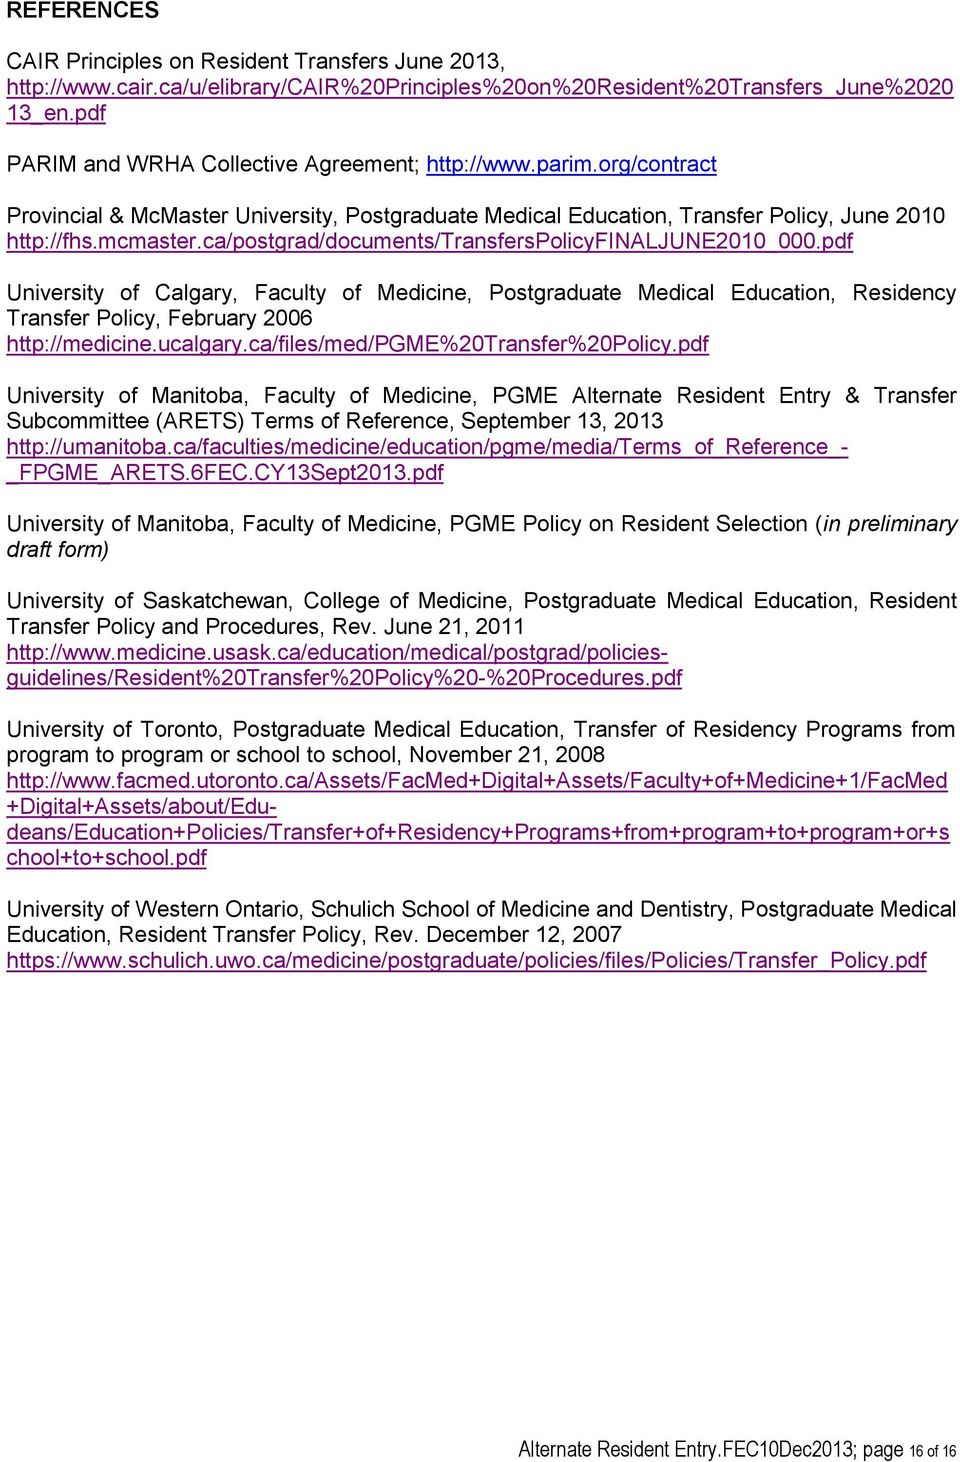 ca/postgrad/documents/transferspolicyfinaljune2010_000.pdf University of Calgary, Faculty of Medicine, Postgraduate Medical Education, Residency Transfer Policy, February 2006 http://medicine.